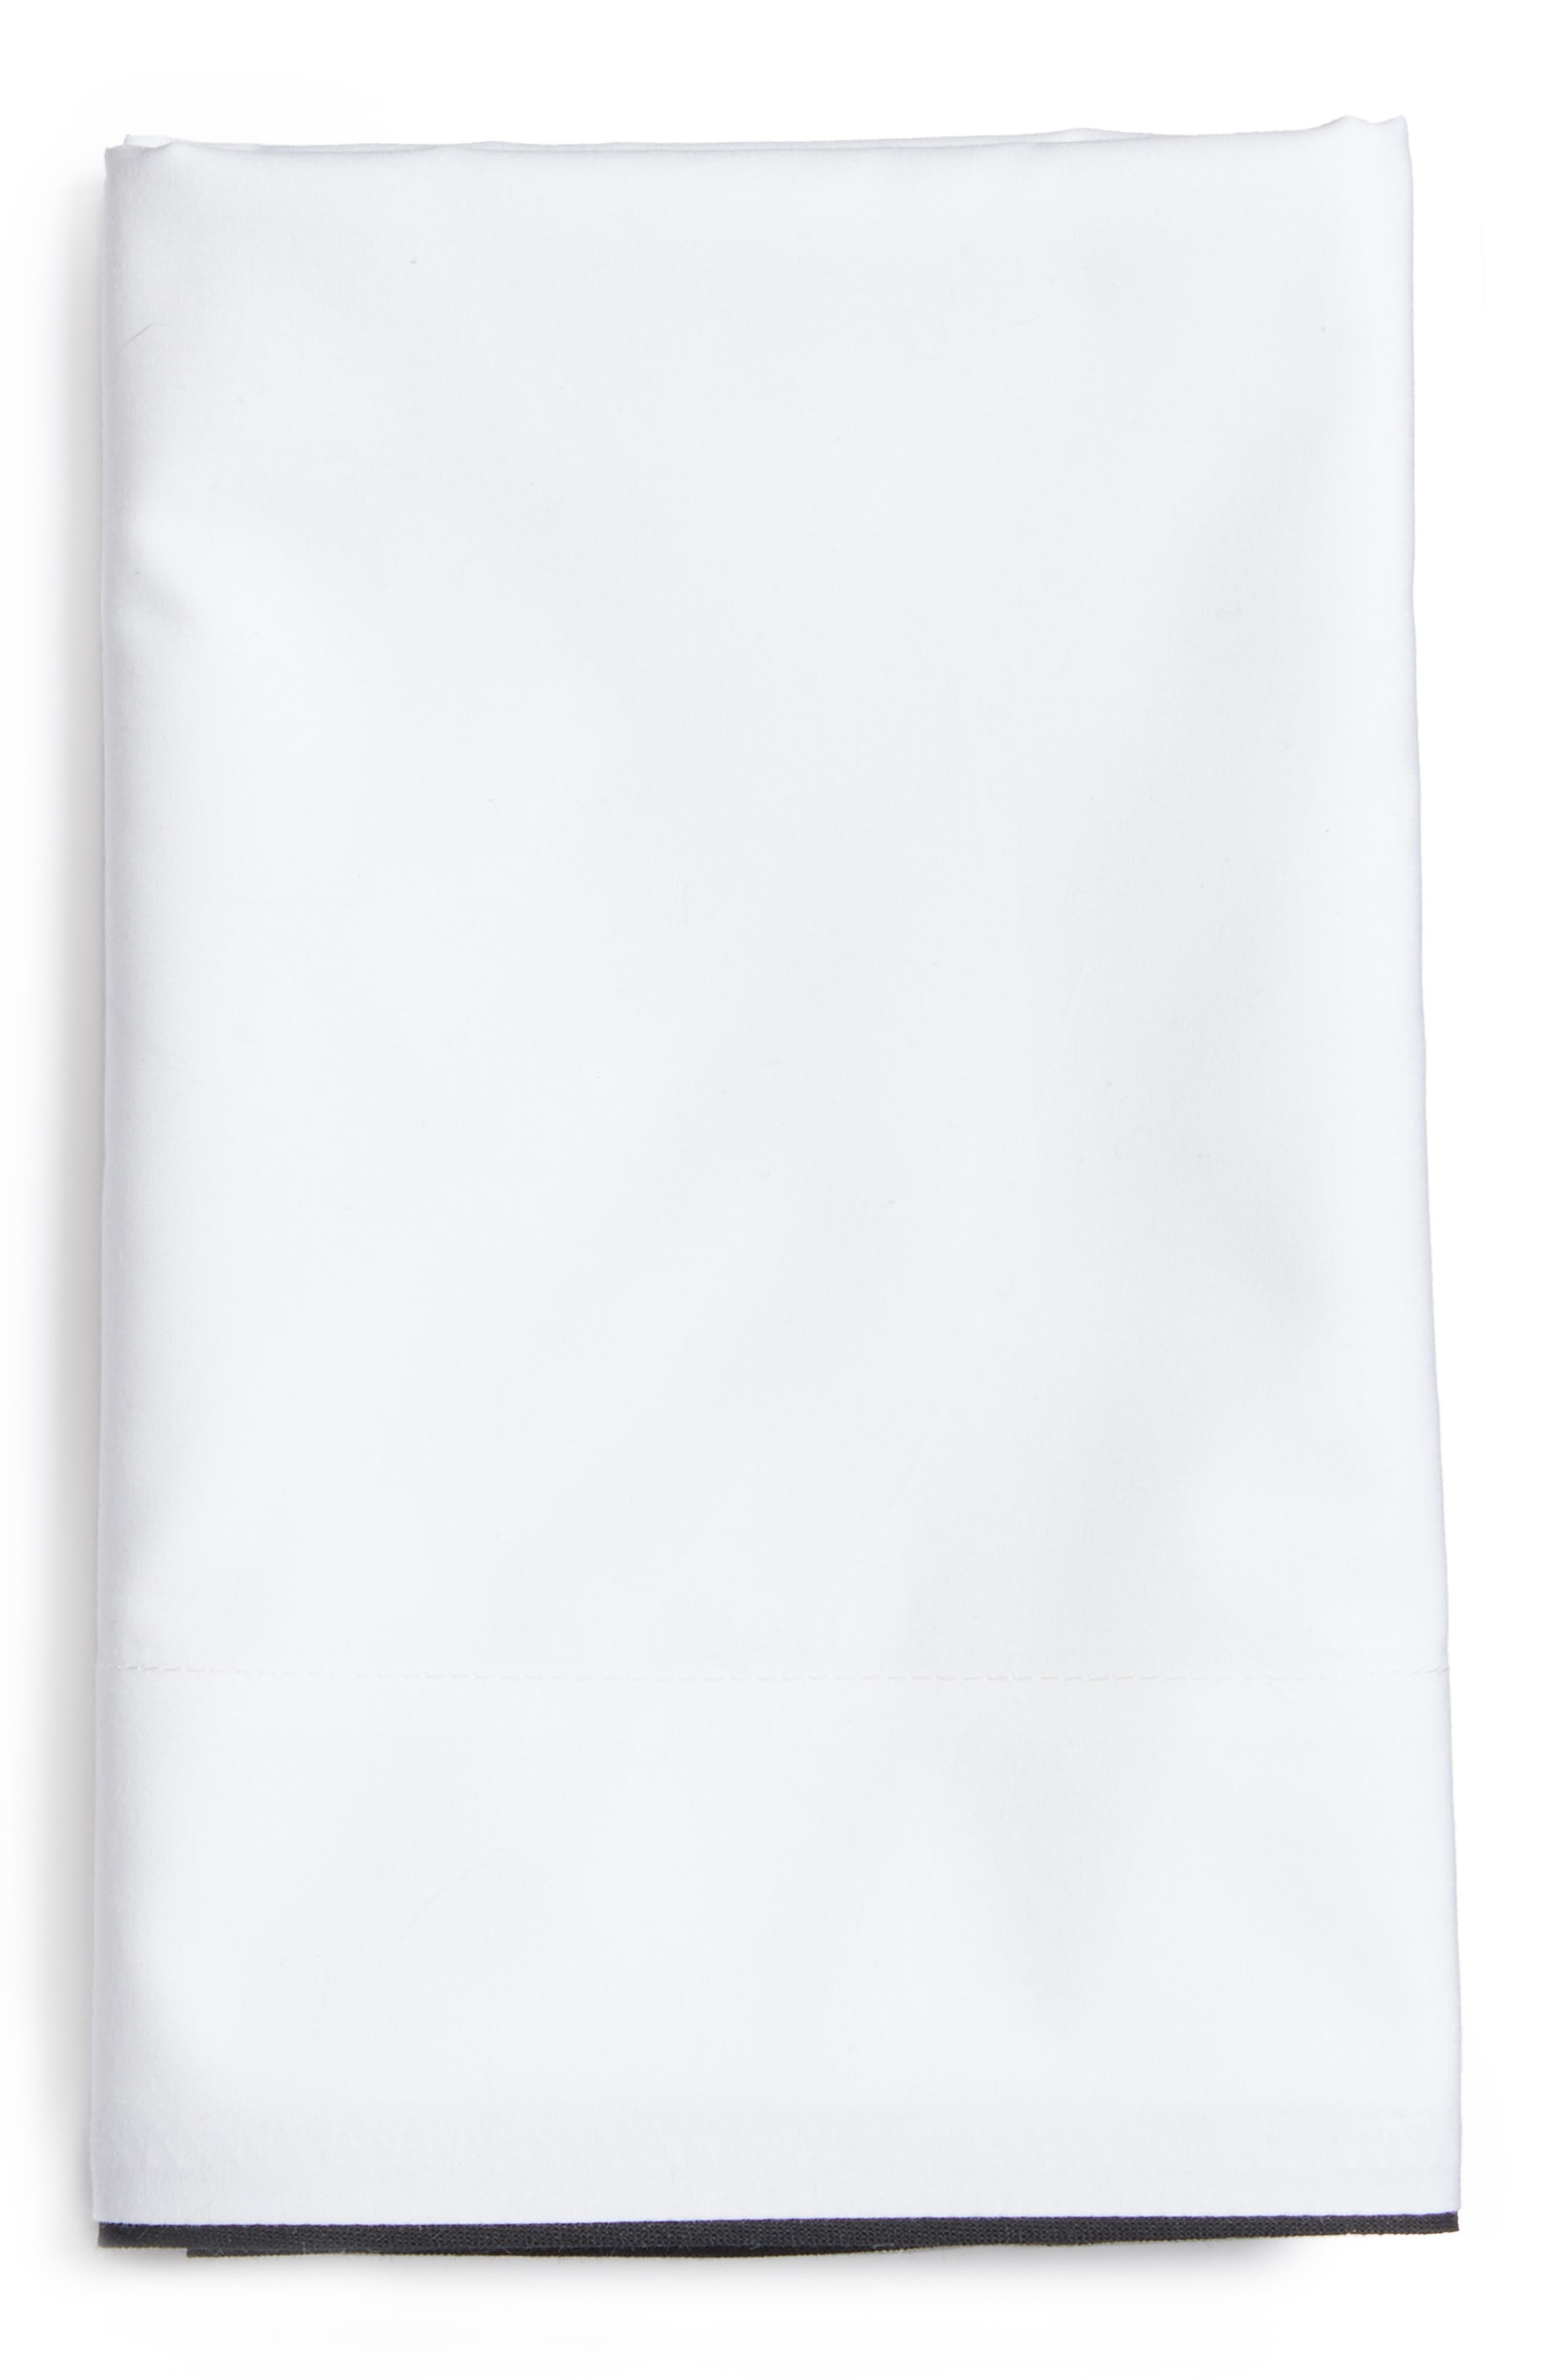 Series 1 500 Thread Count Pillowcases,                             Main thumbnail 1, color,                             001